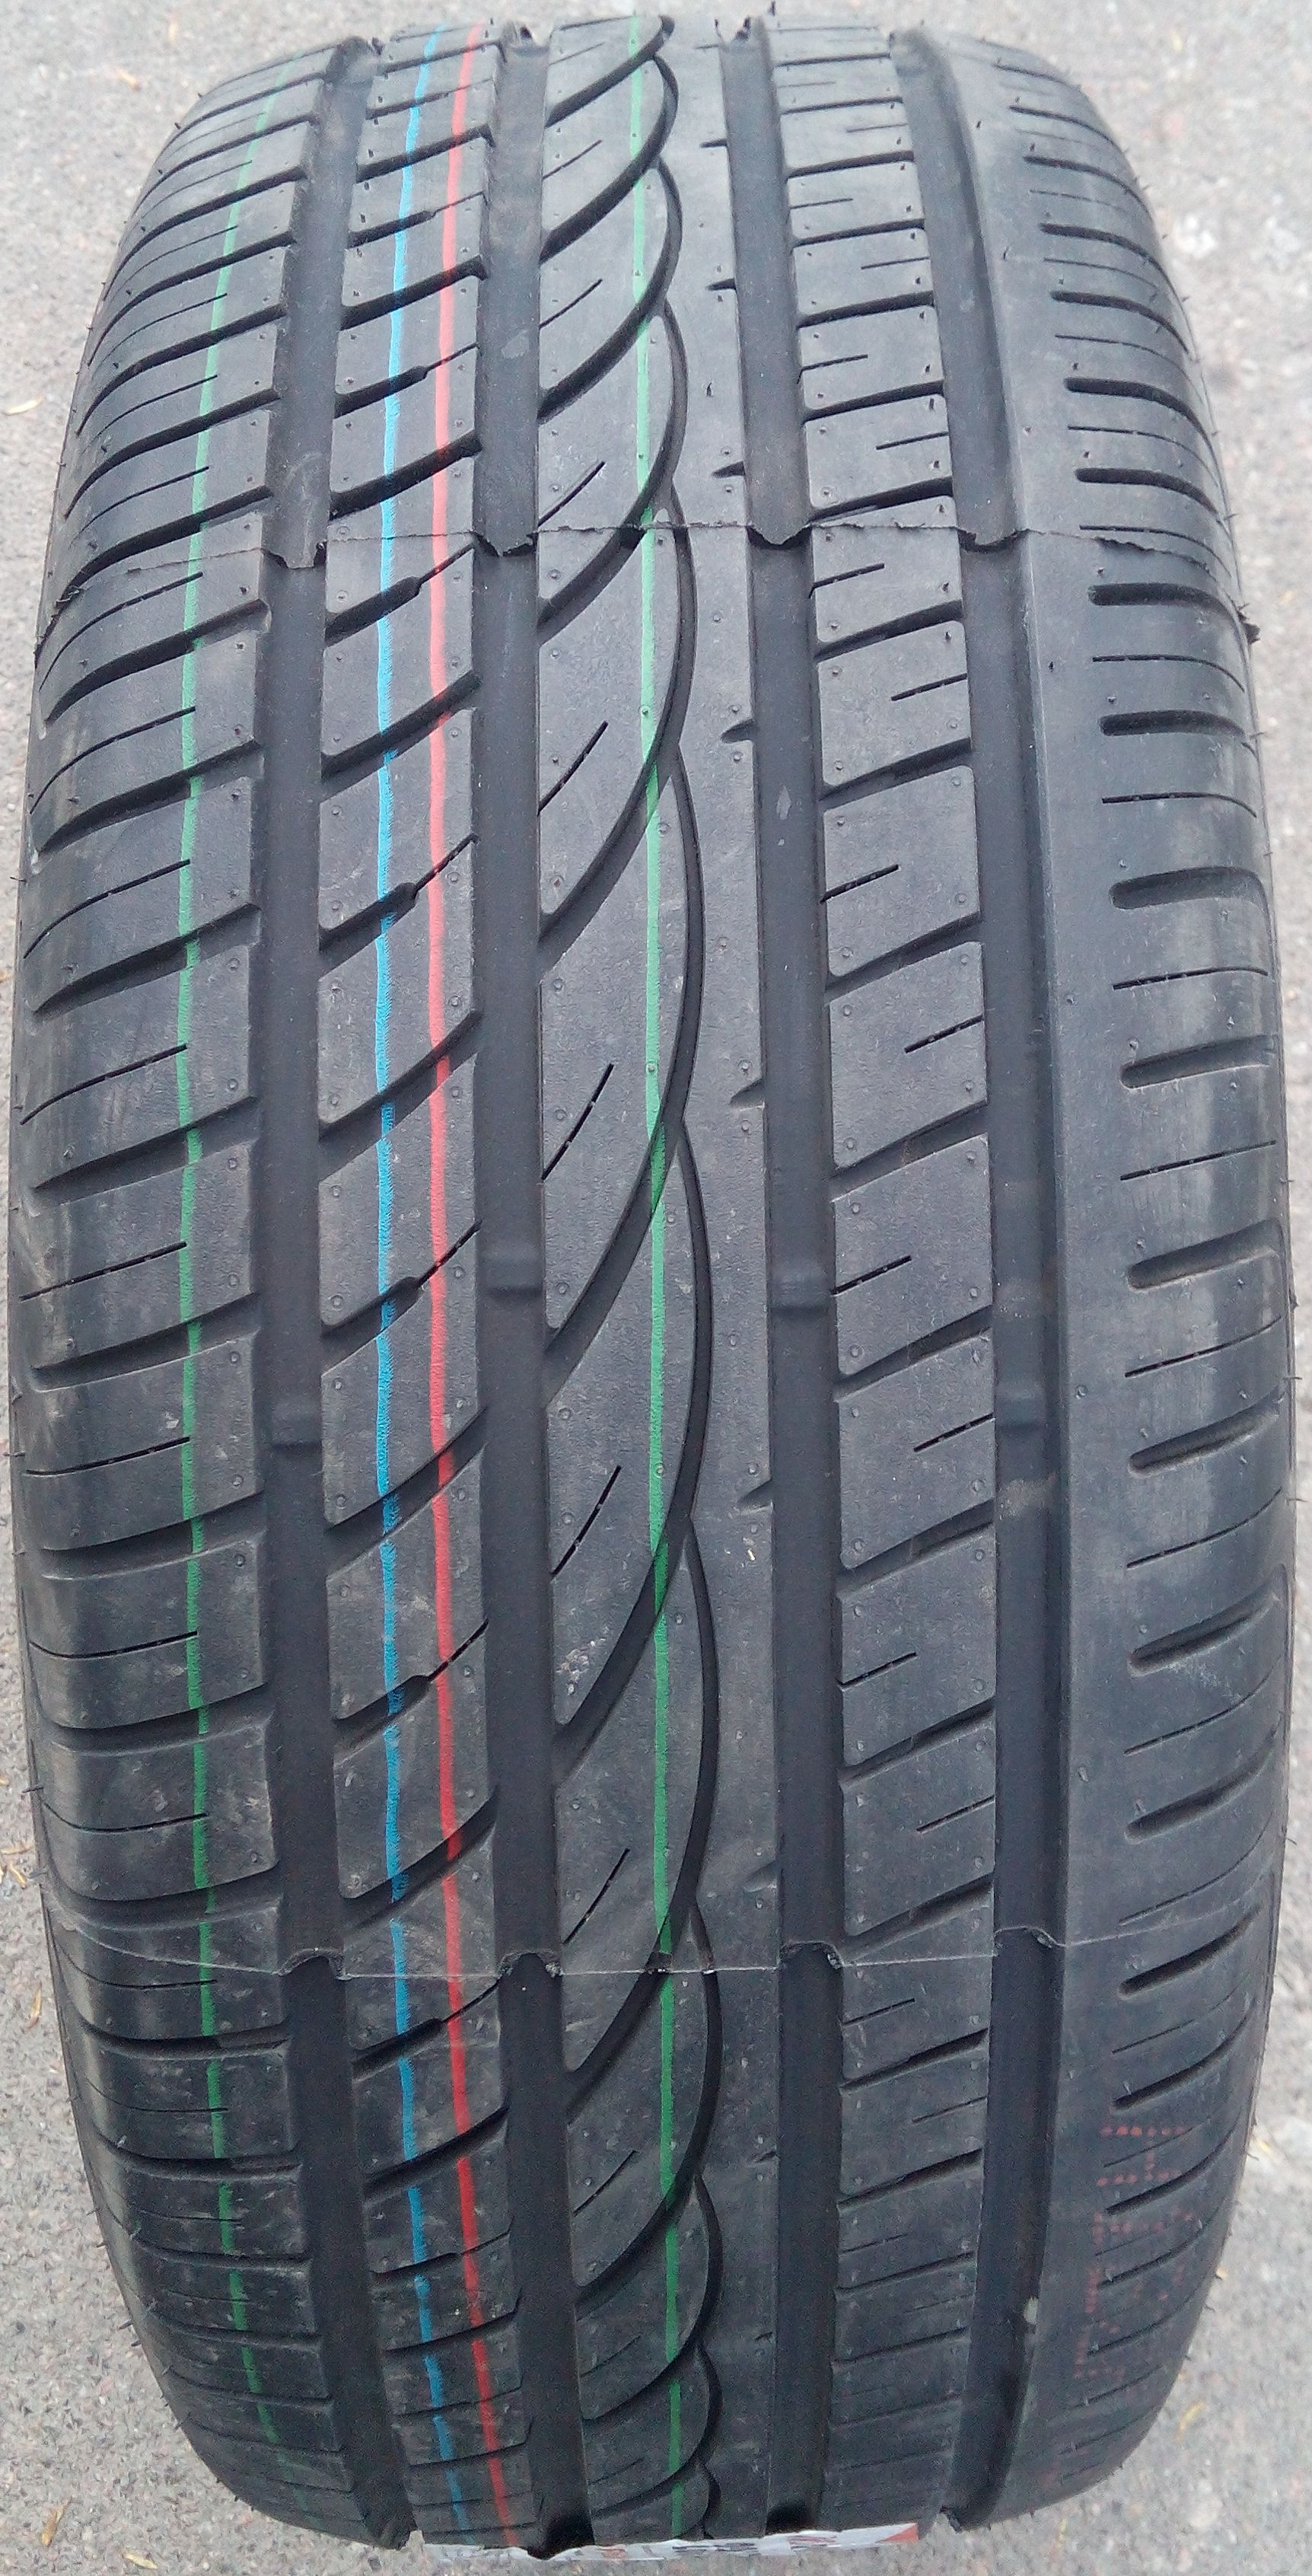 Kingrun-PHANTOM K3000 -295/35R21-107W X/L